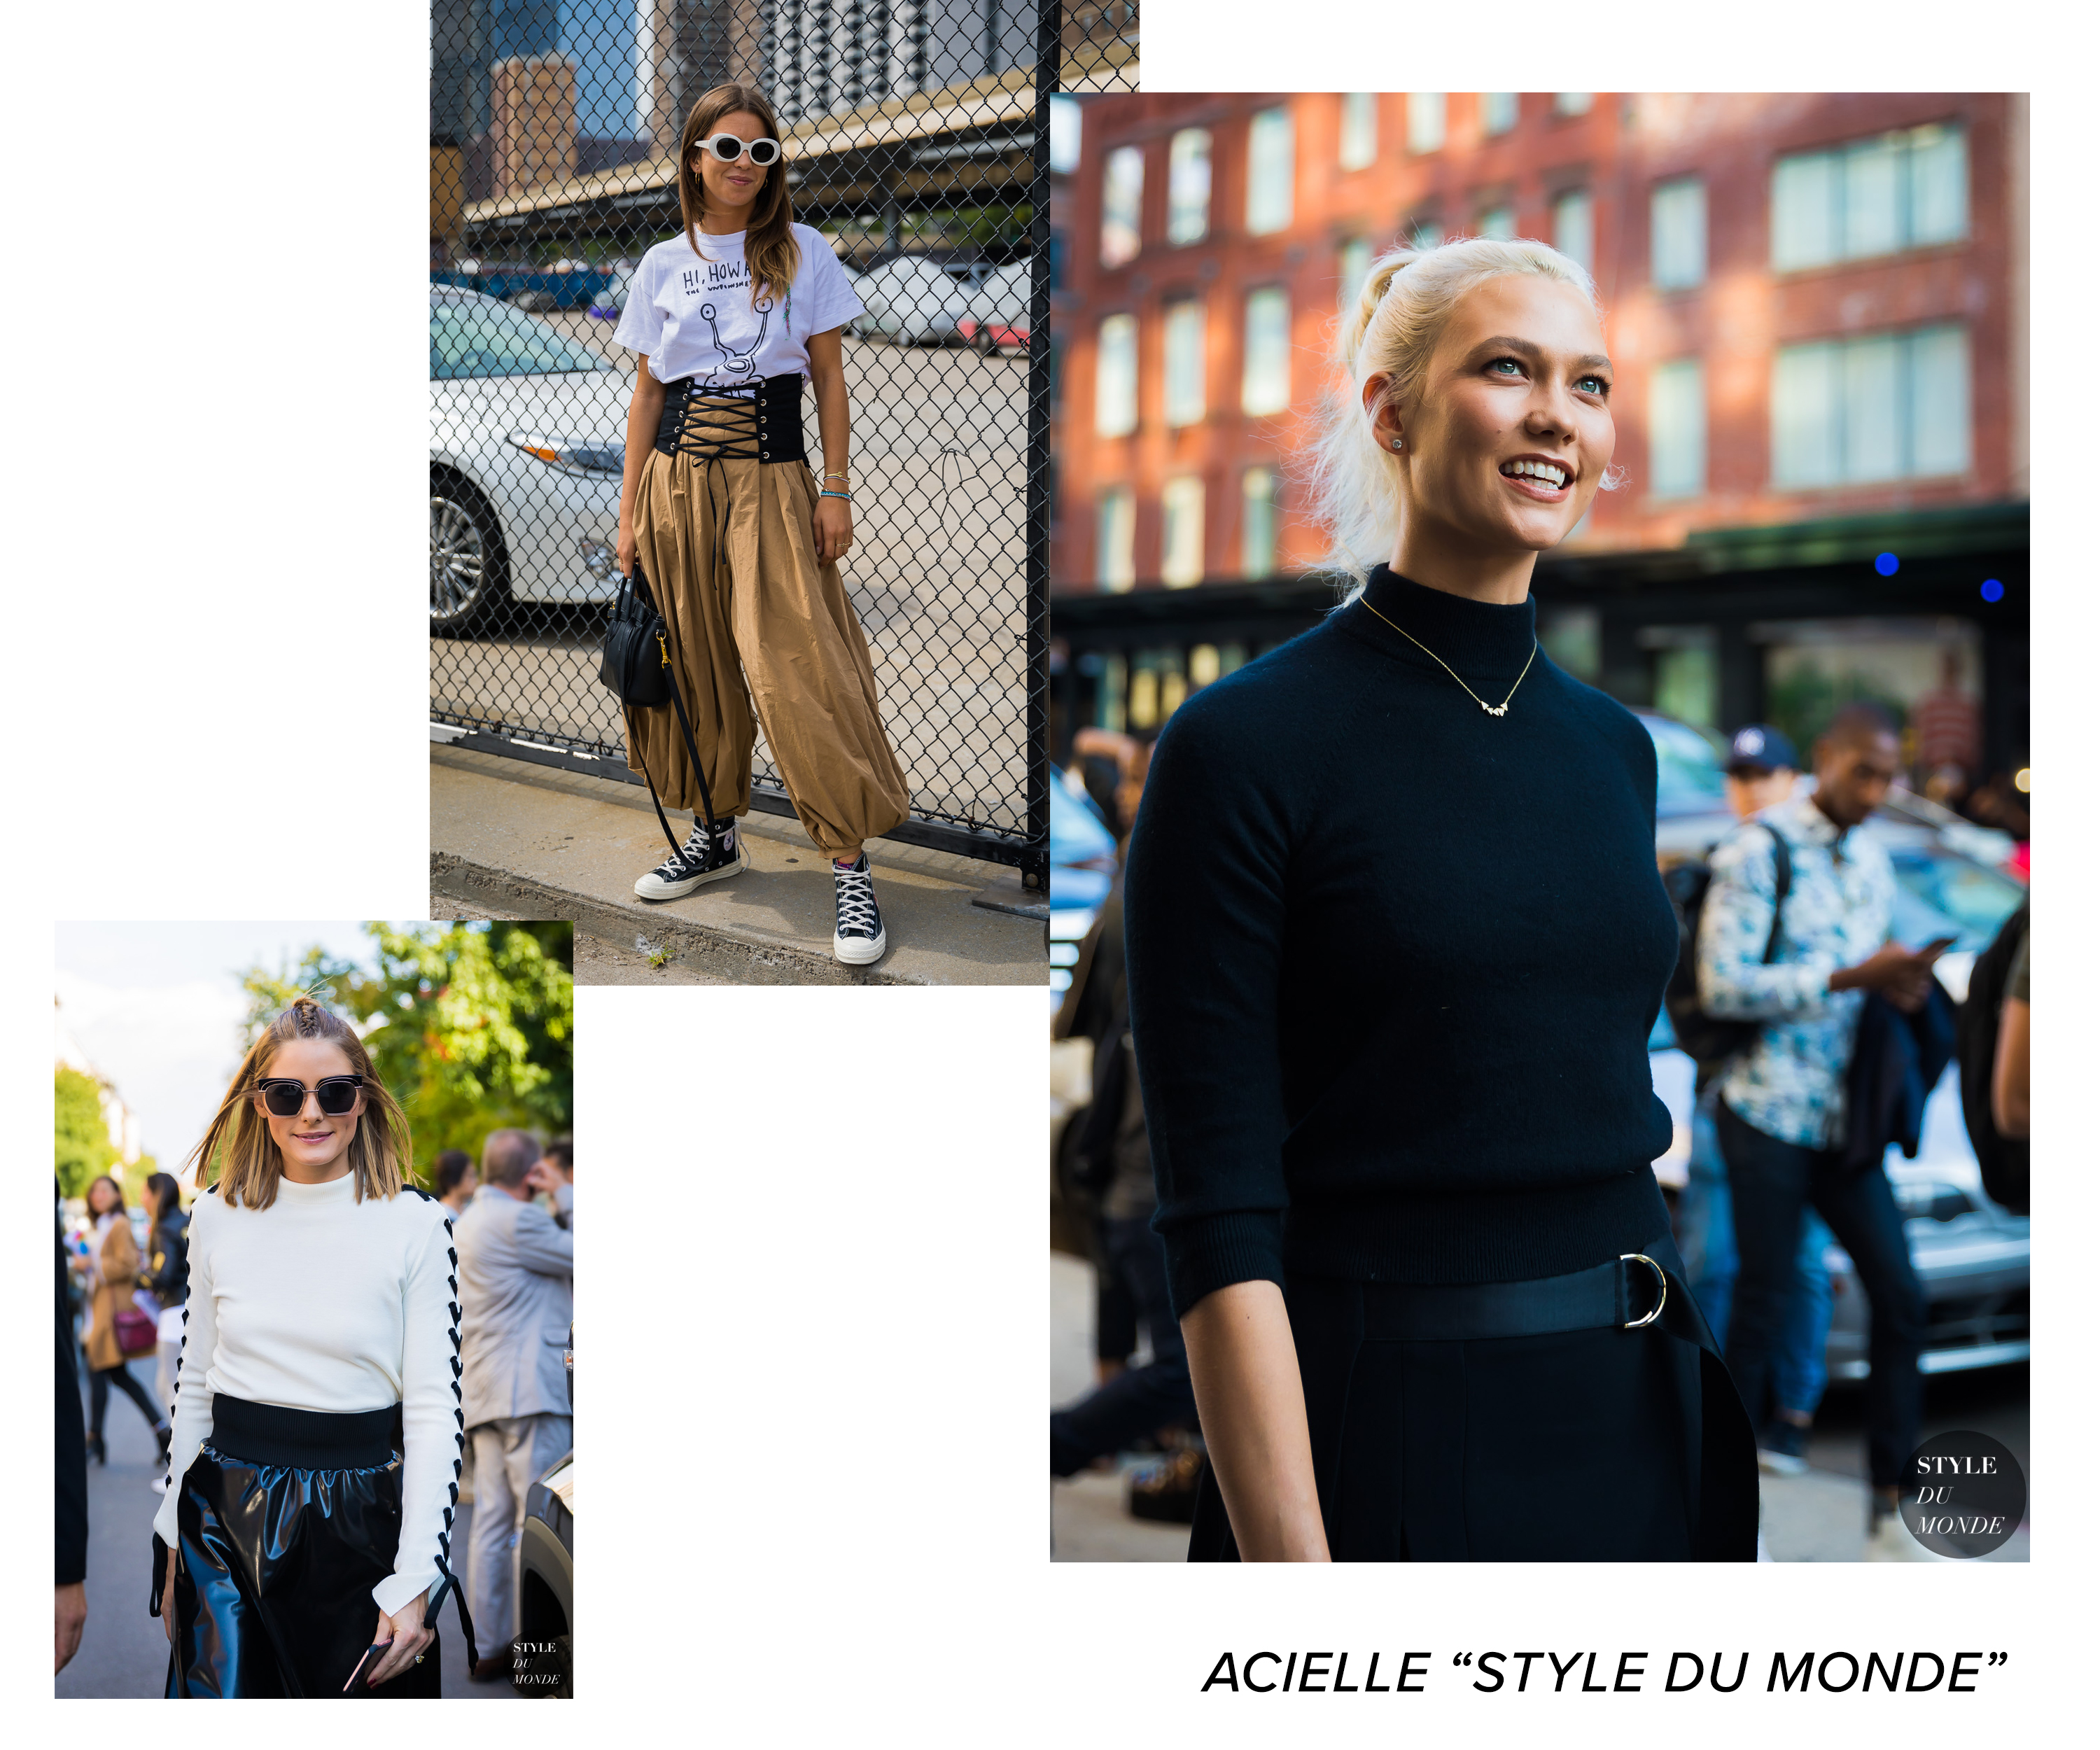 Acielle - Style Du Monde - 19 Photographers Taking Photos of Your Favorite Models and Designers - FilterGrade